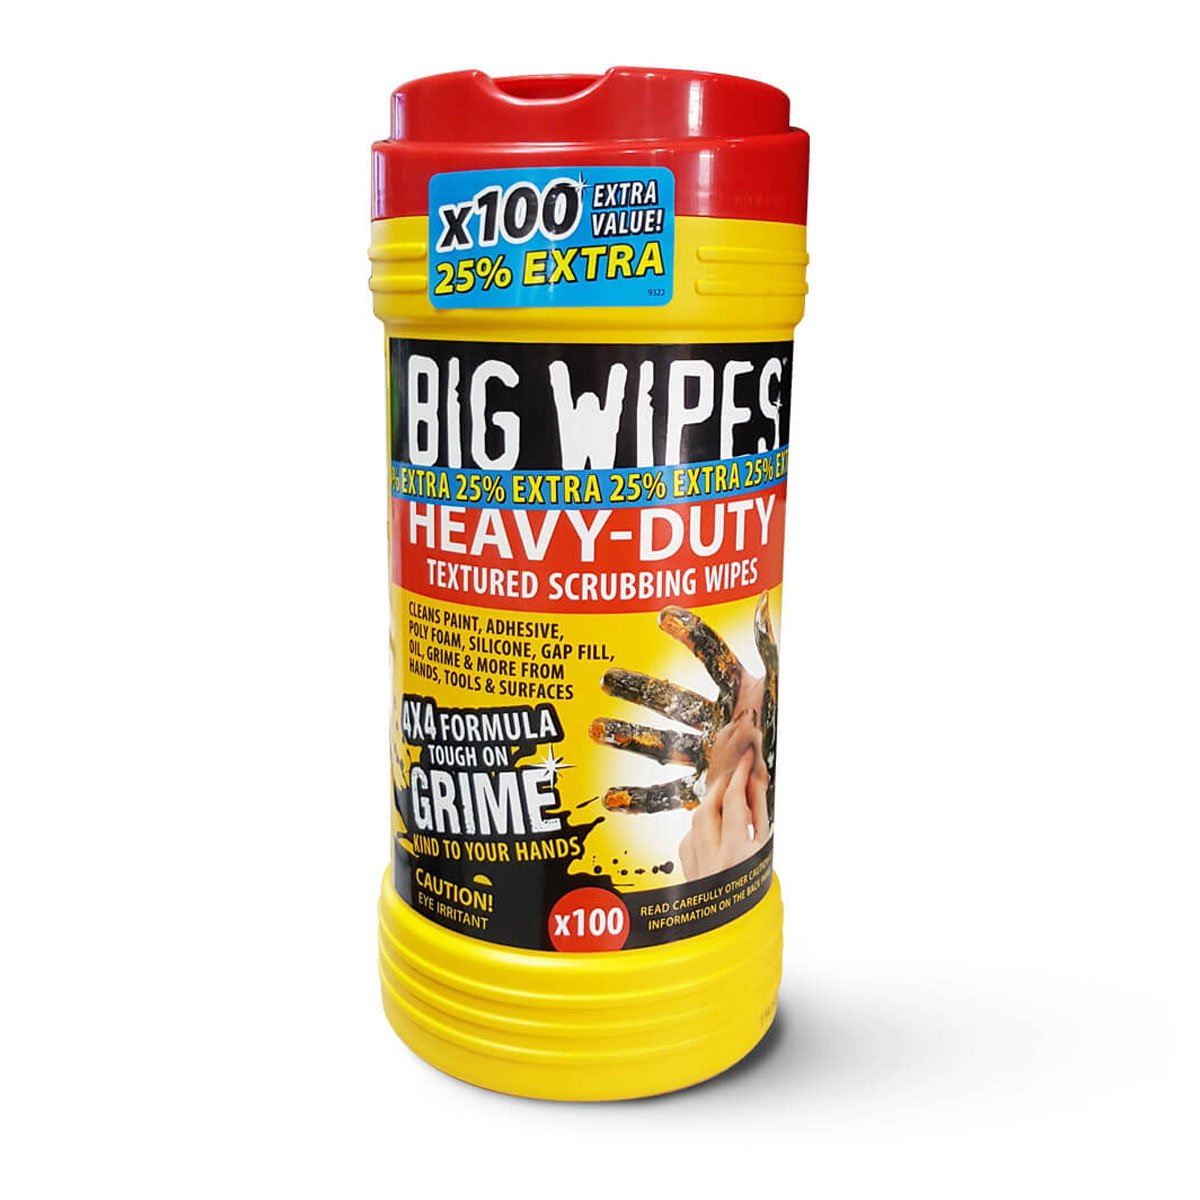 Big Wipes 60020057 Heavy-Duty Industrial Textured Scrub and Clean Wipes, 100 Count per Tube